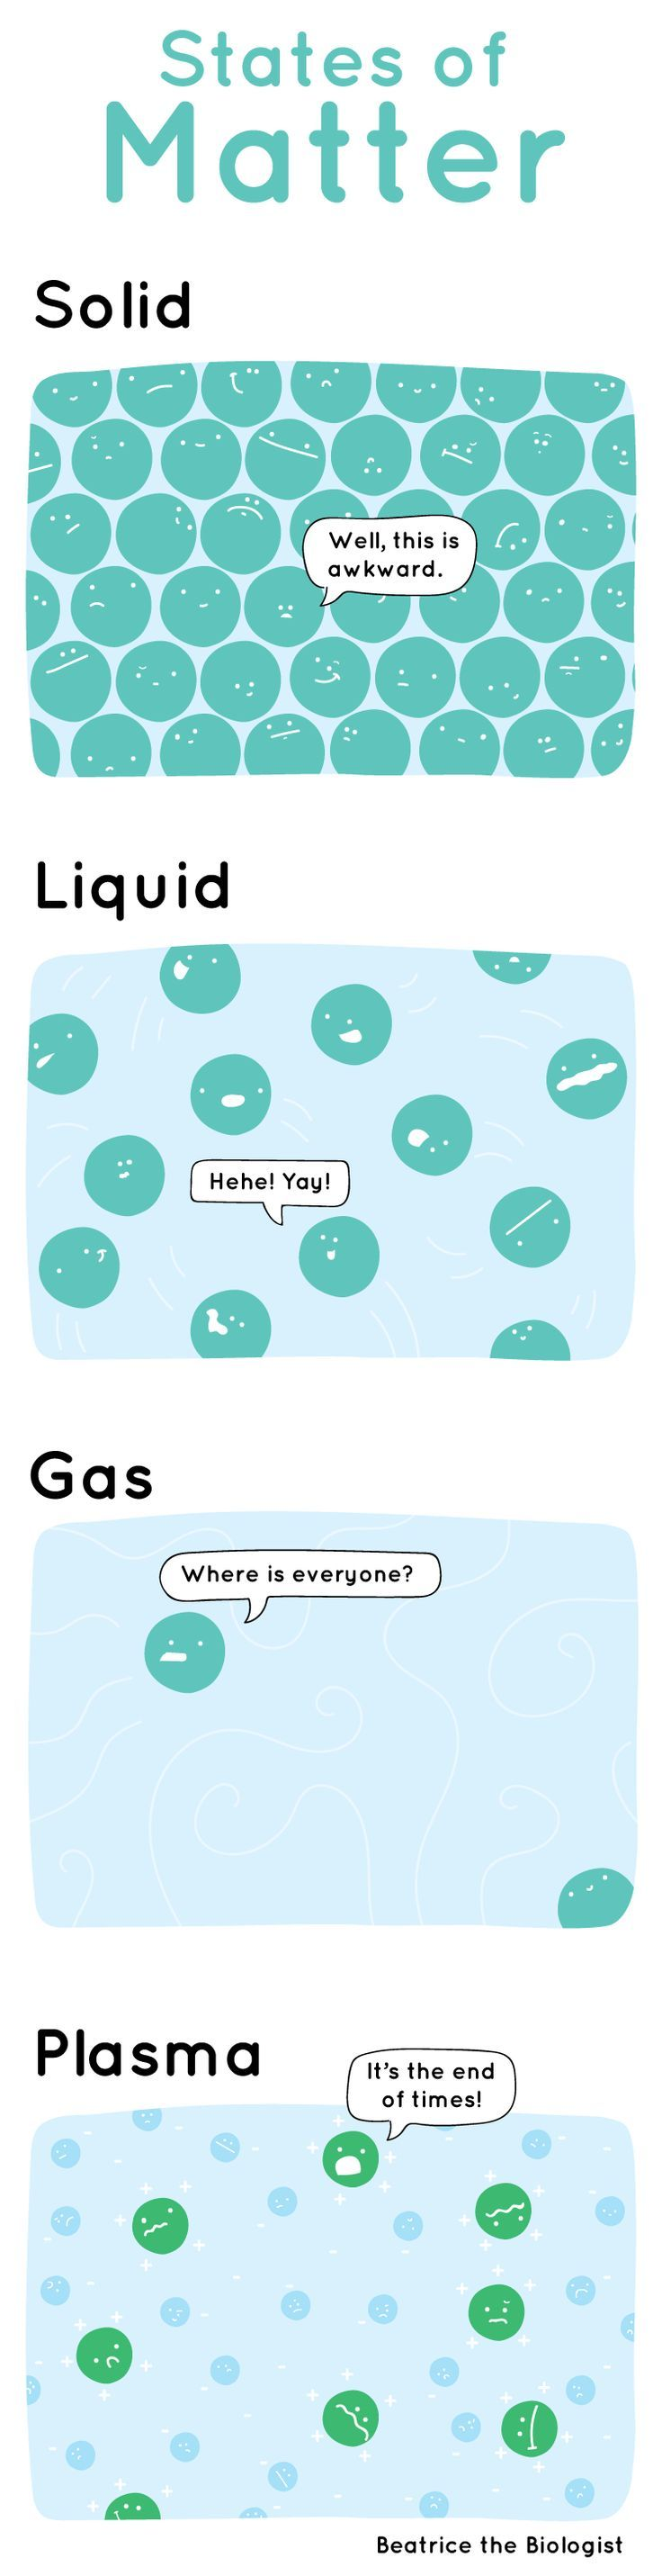 Funny cartoon about the states of matter- chemistry or physical science